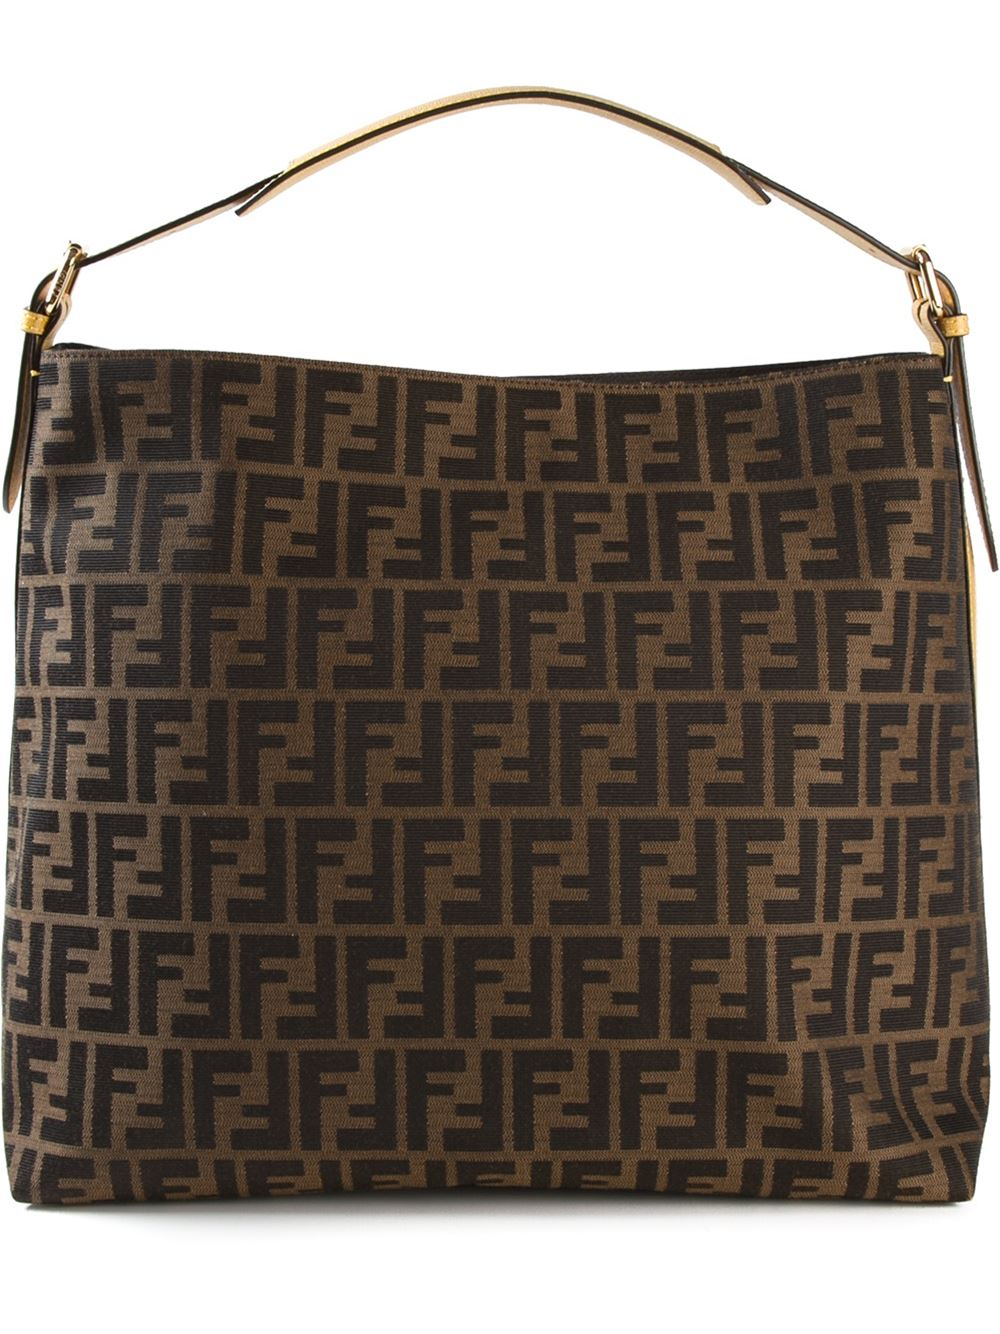 4ef5325dd4e ... ireland lyst fendi zucca shoulder bag in brown 12778 5fa6c ...